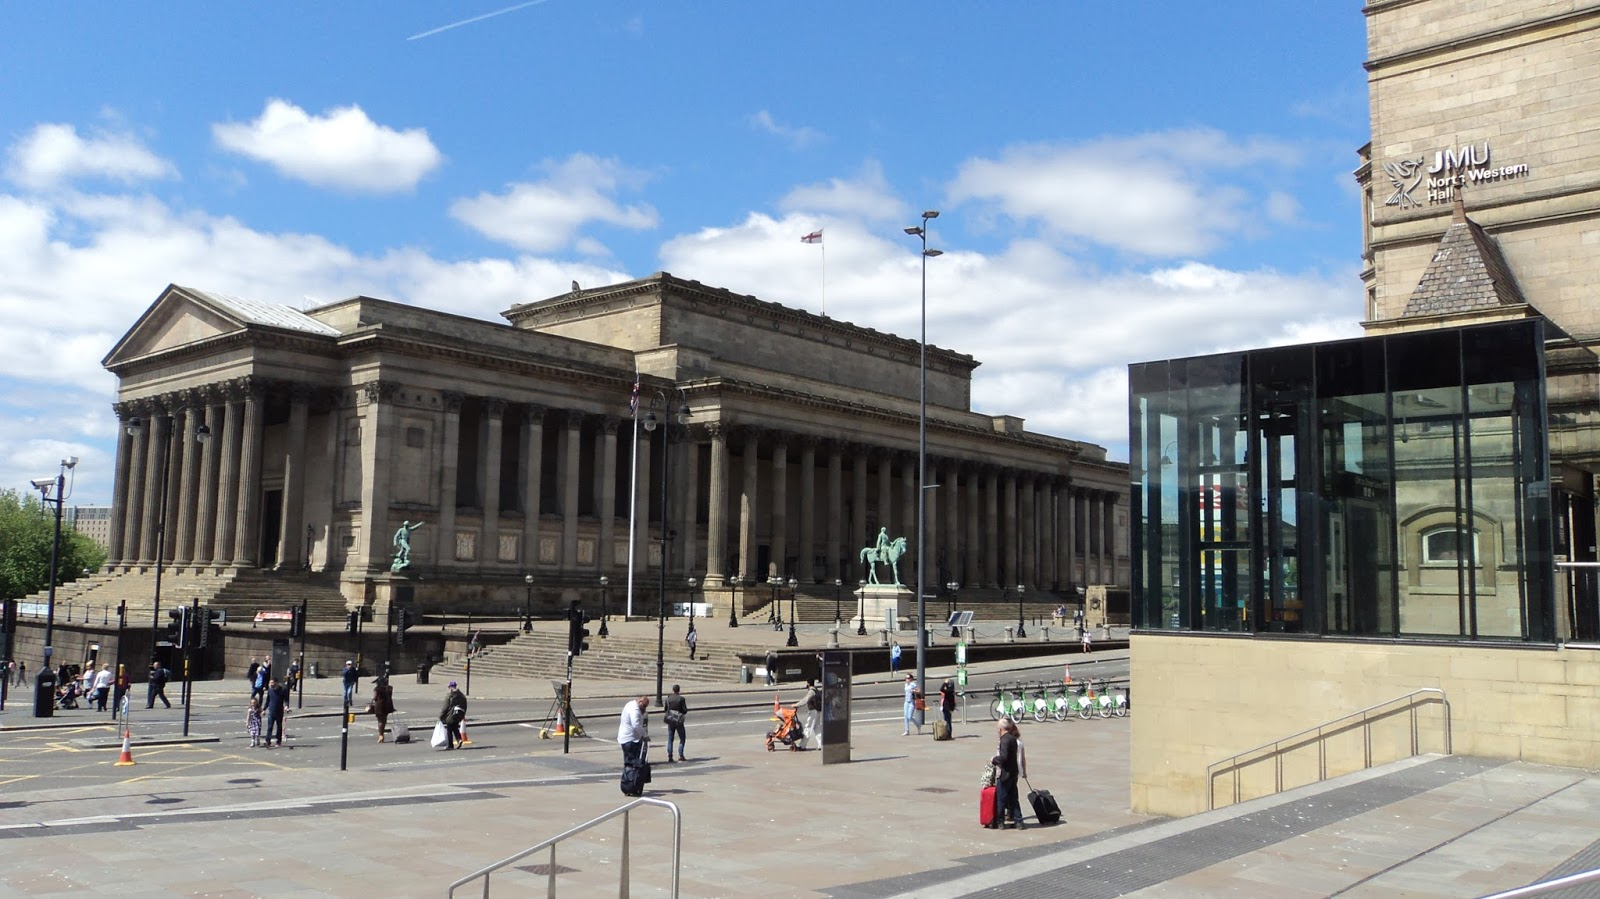 St. George's Hall Liverpool